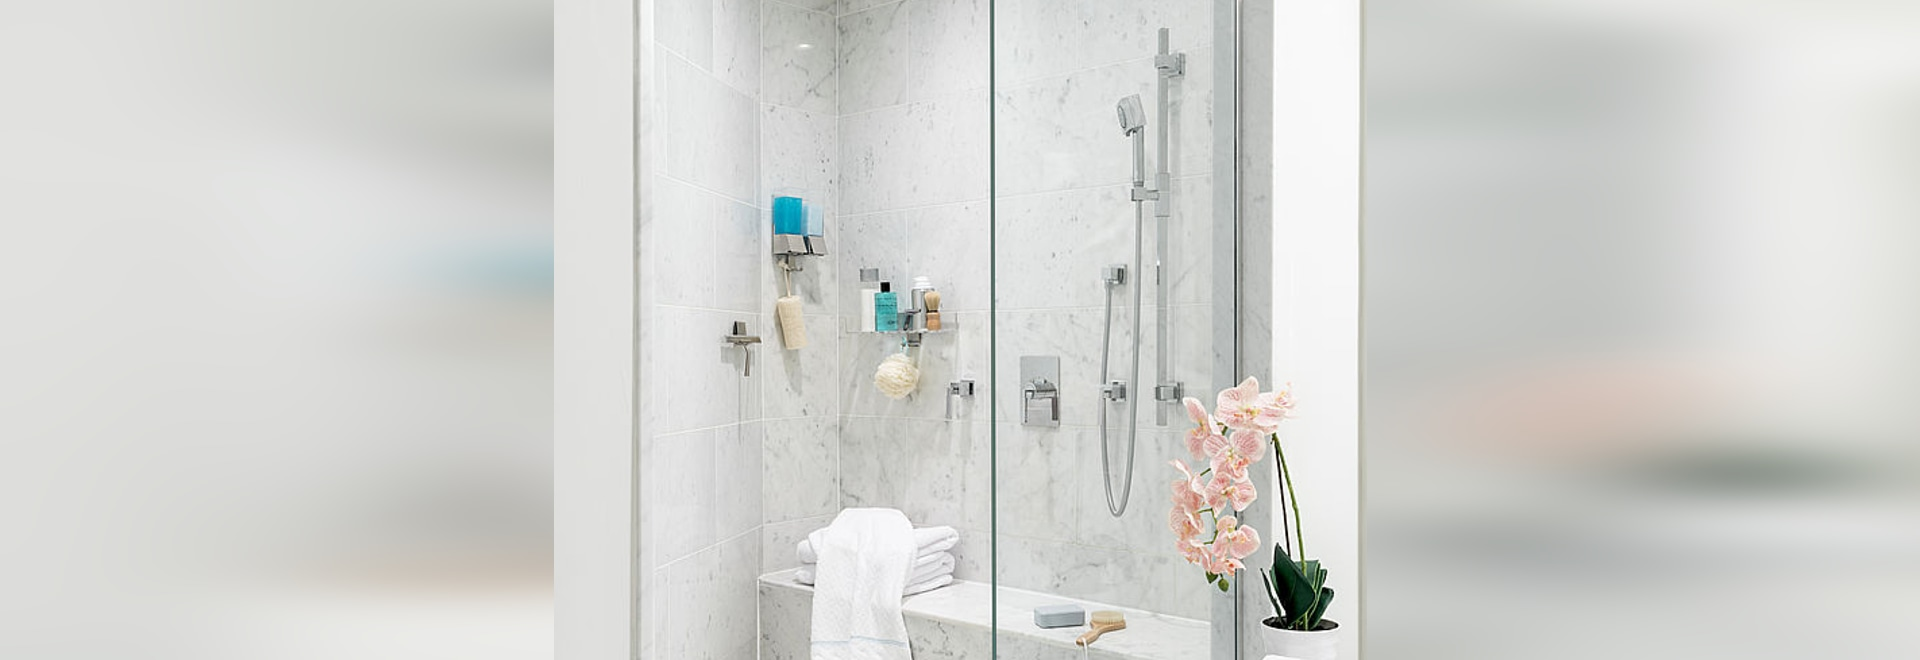 LINEA Luxury Shower Organizers - Better Living Products